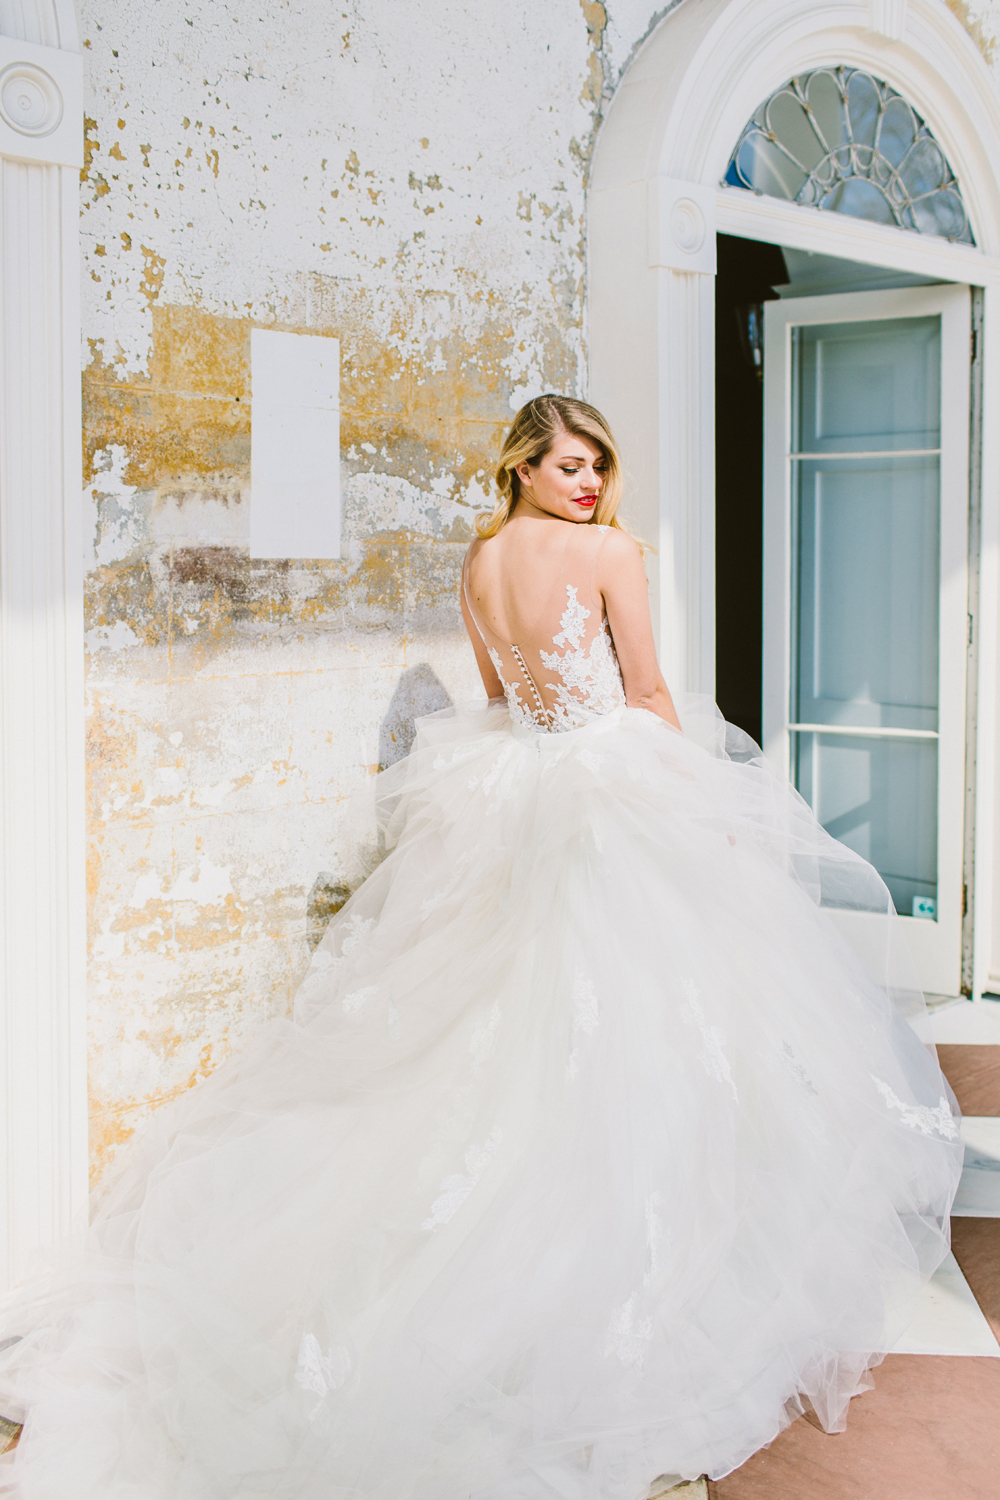 Tristan bodysuit with Gemma skirt from Sottero & Midgley - http://ruffledblog.com/drool-worthy-wedding-gowns-we-cant-stop-looking-at